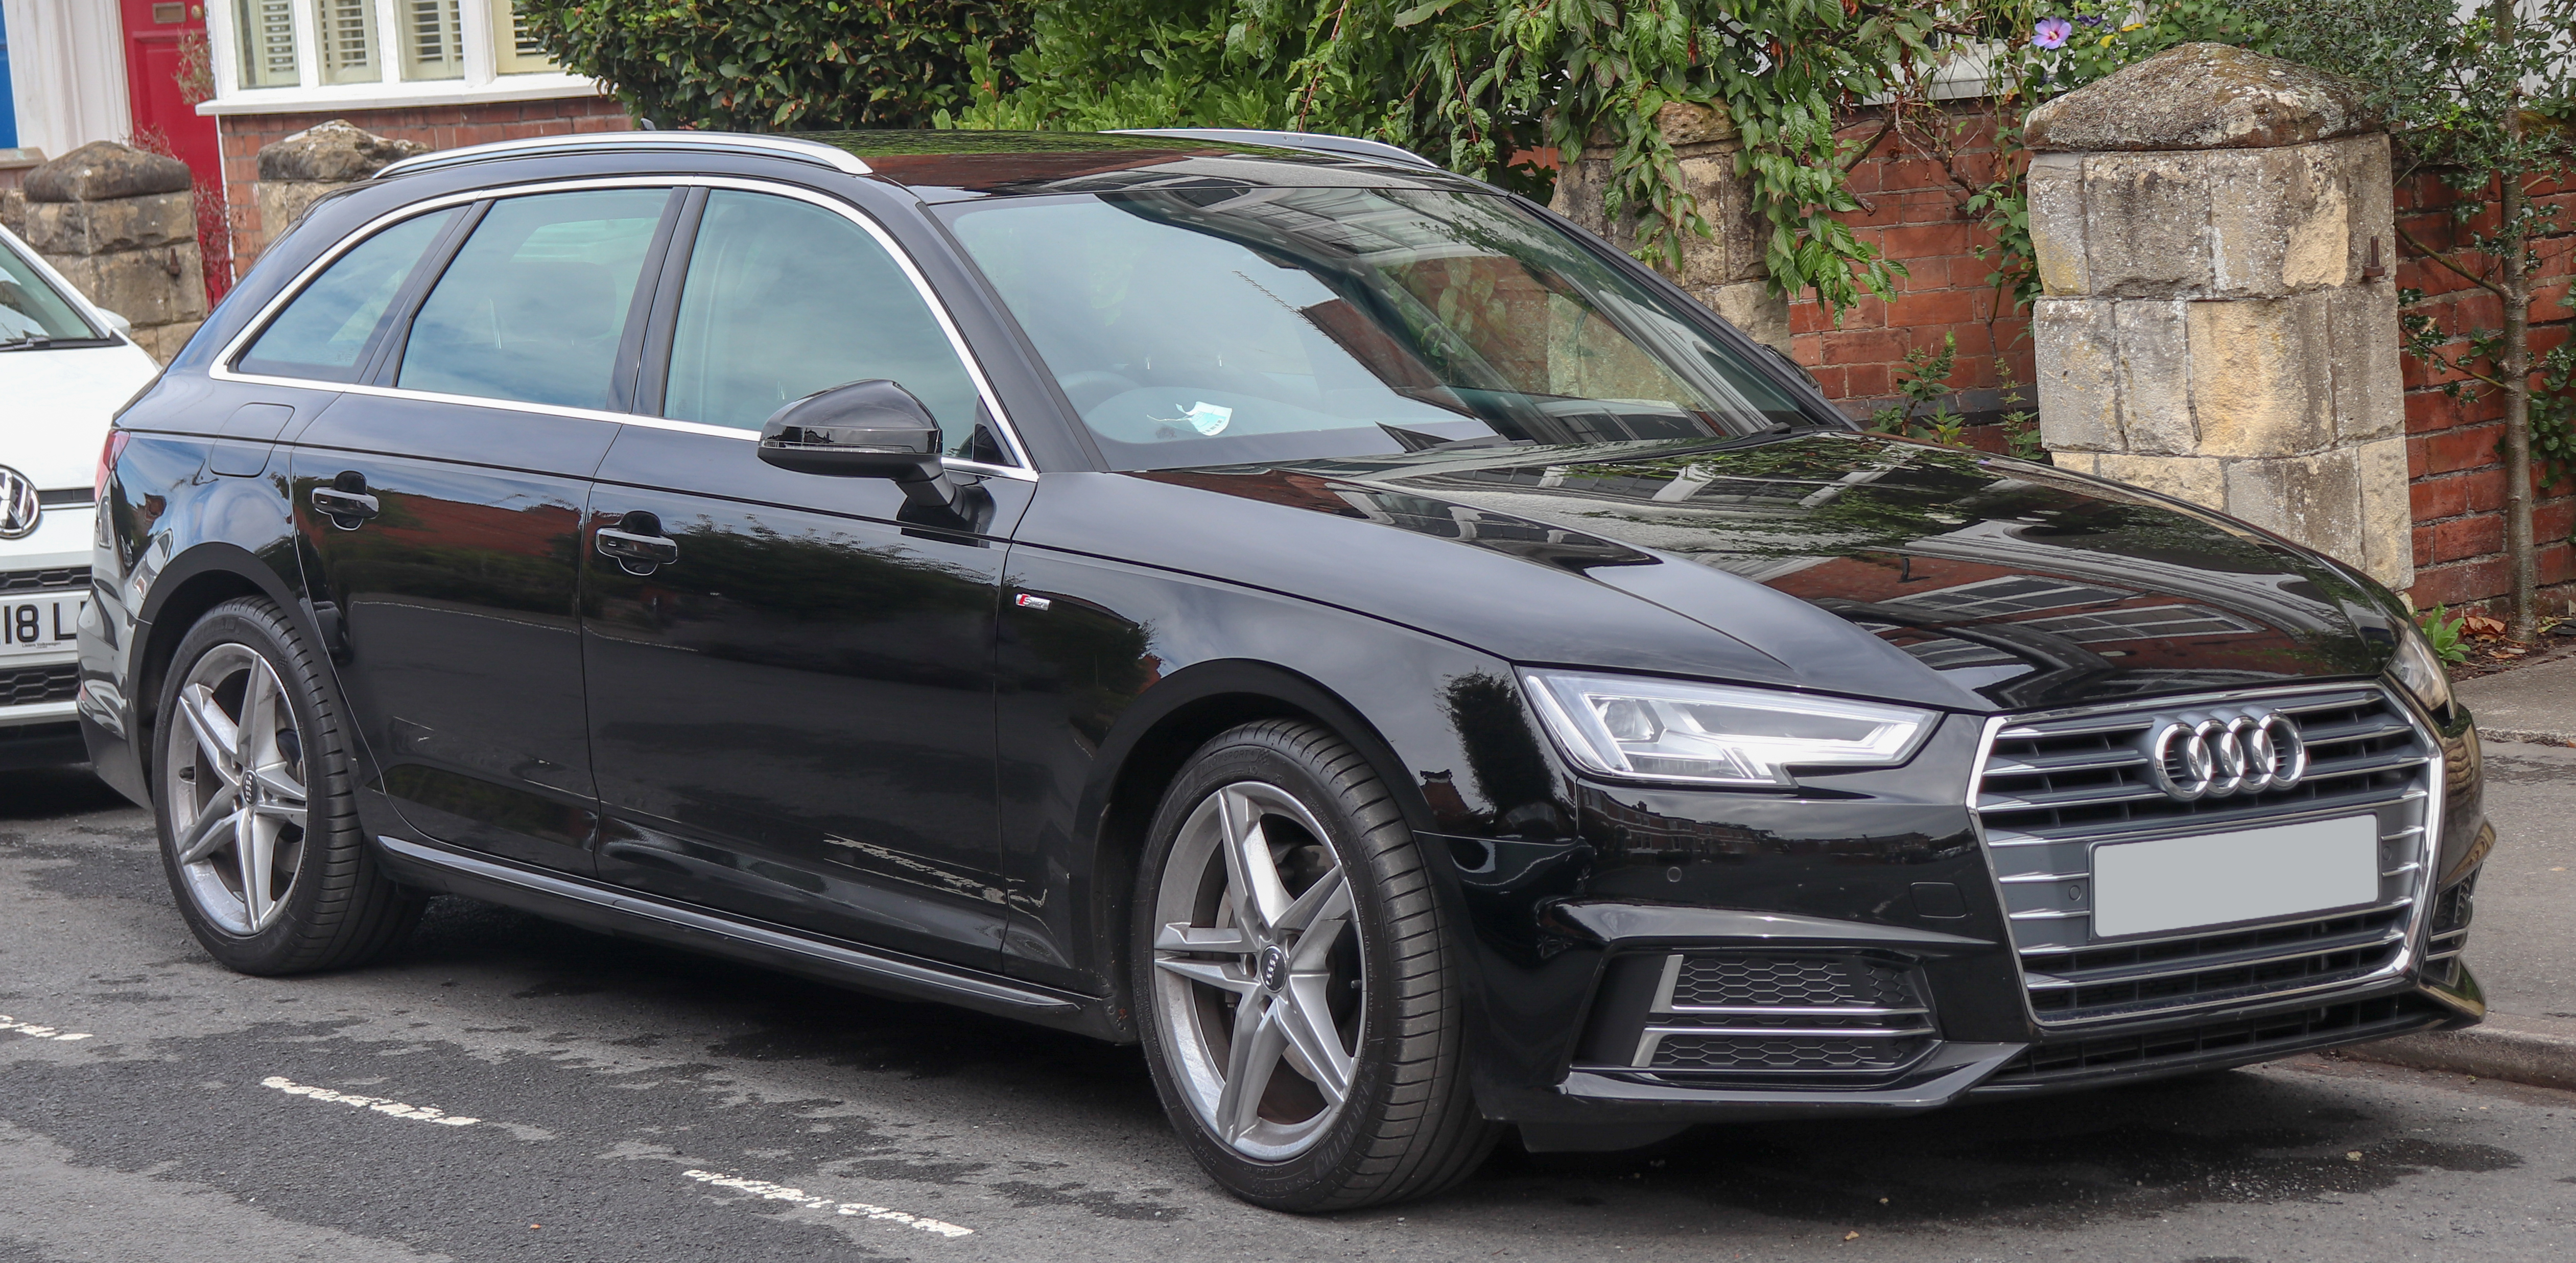 File2018 Audi A4 Avant S Line Tdi S A 20 Frontjpg Wikimedia Commons